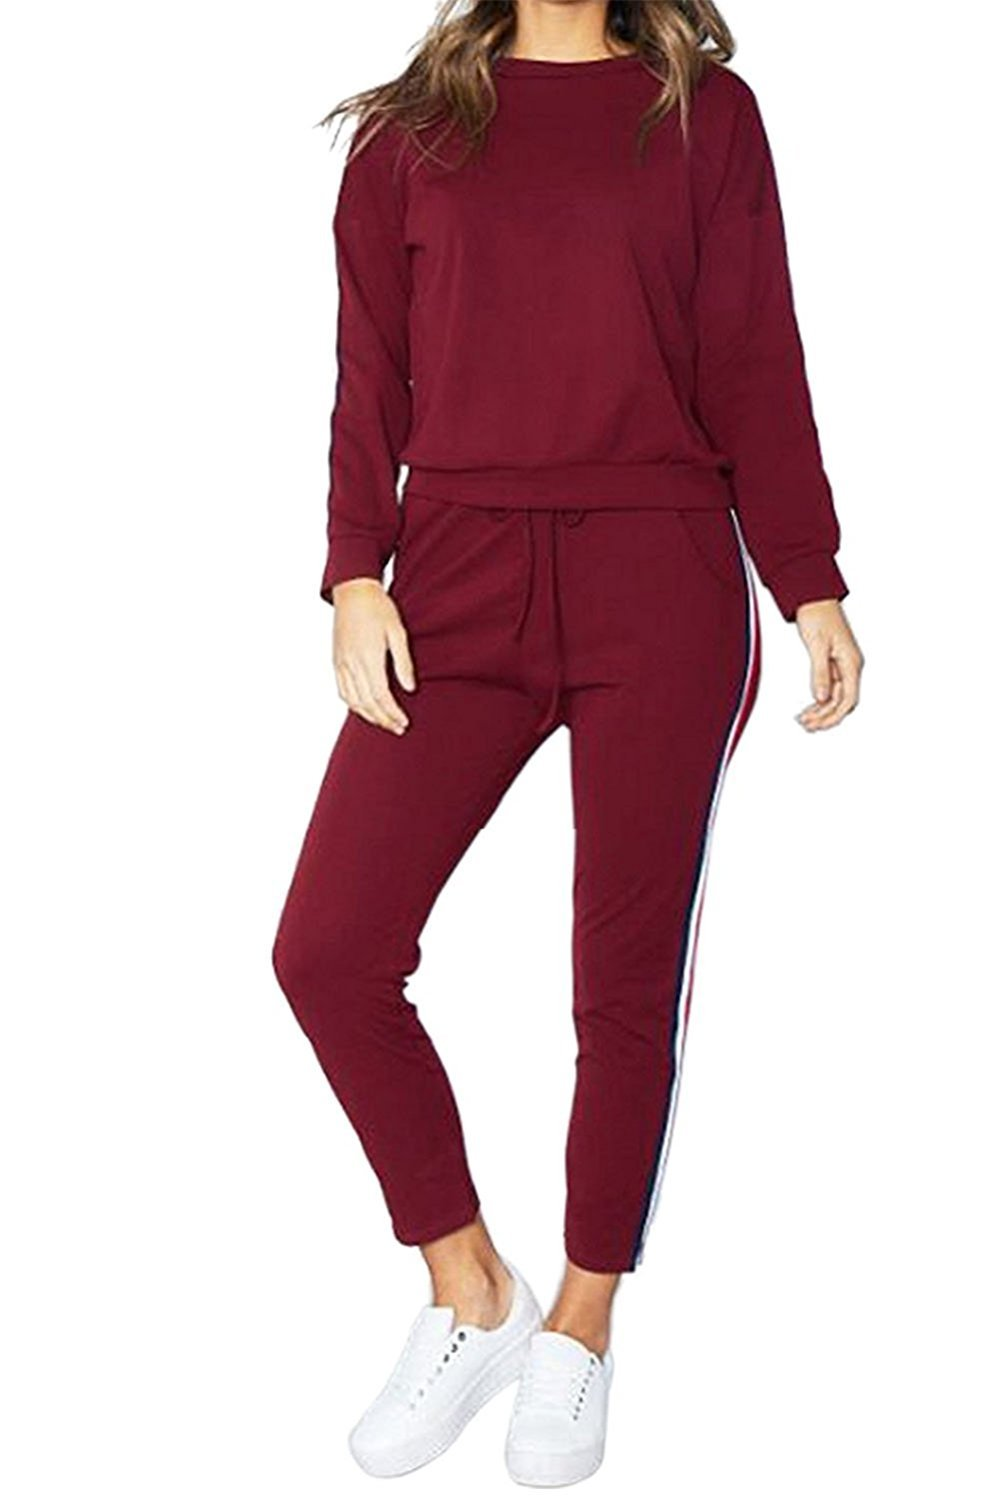 FOUNDO Women's 2 Pieces Outfits Stripe-Side Sweatshirt Pants Casual Tracksuit